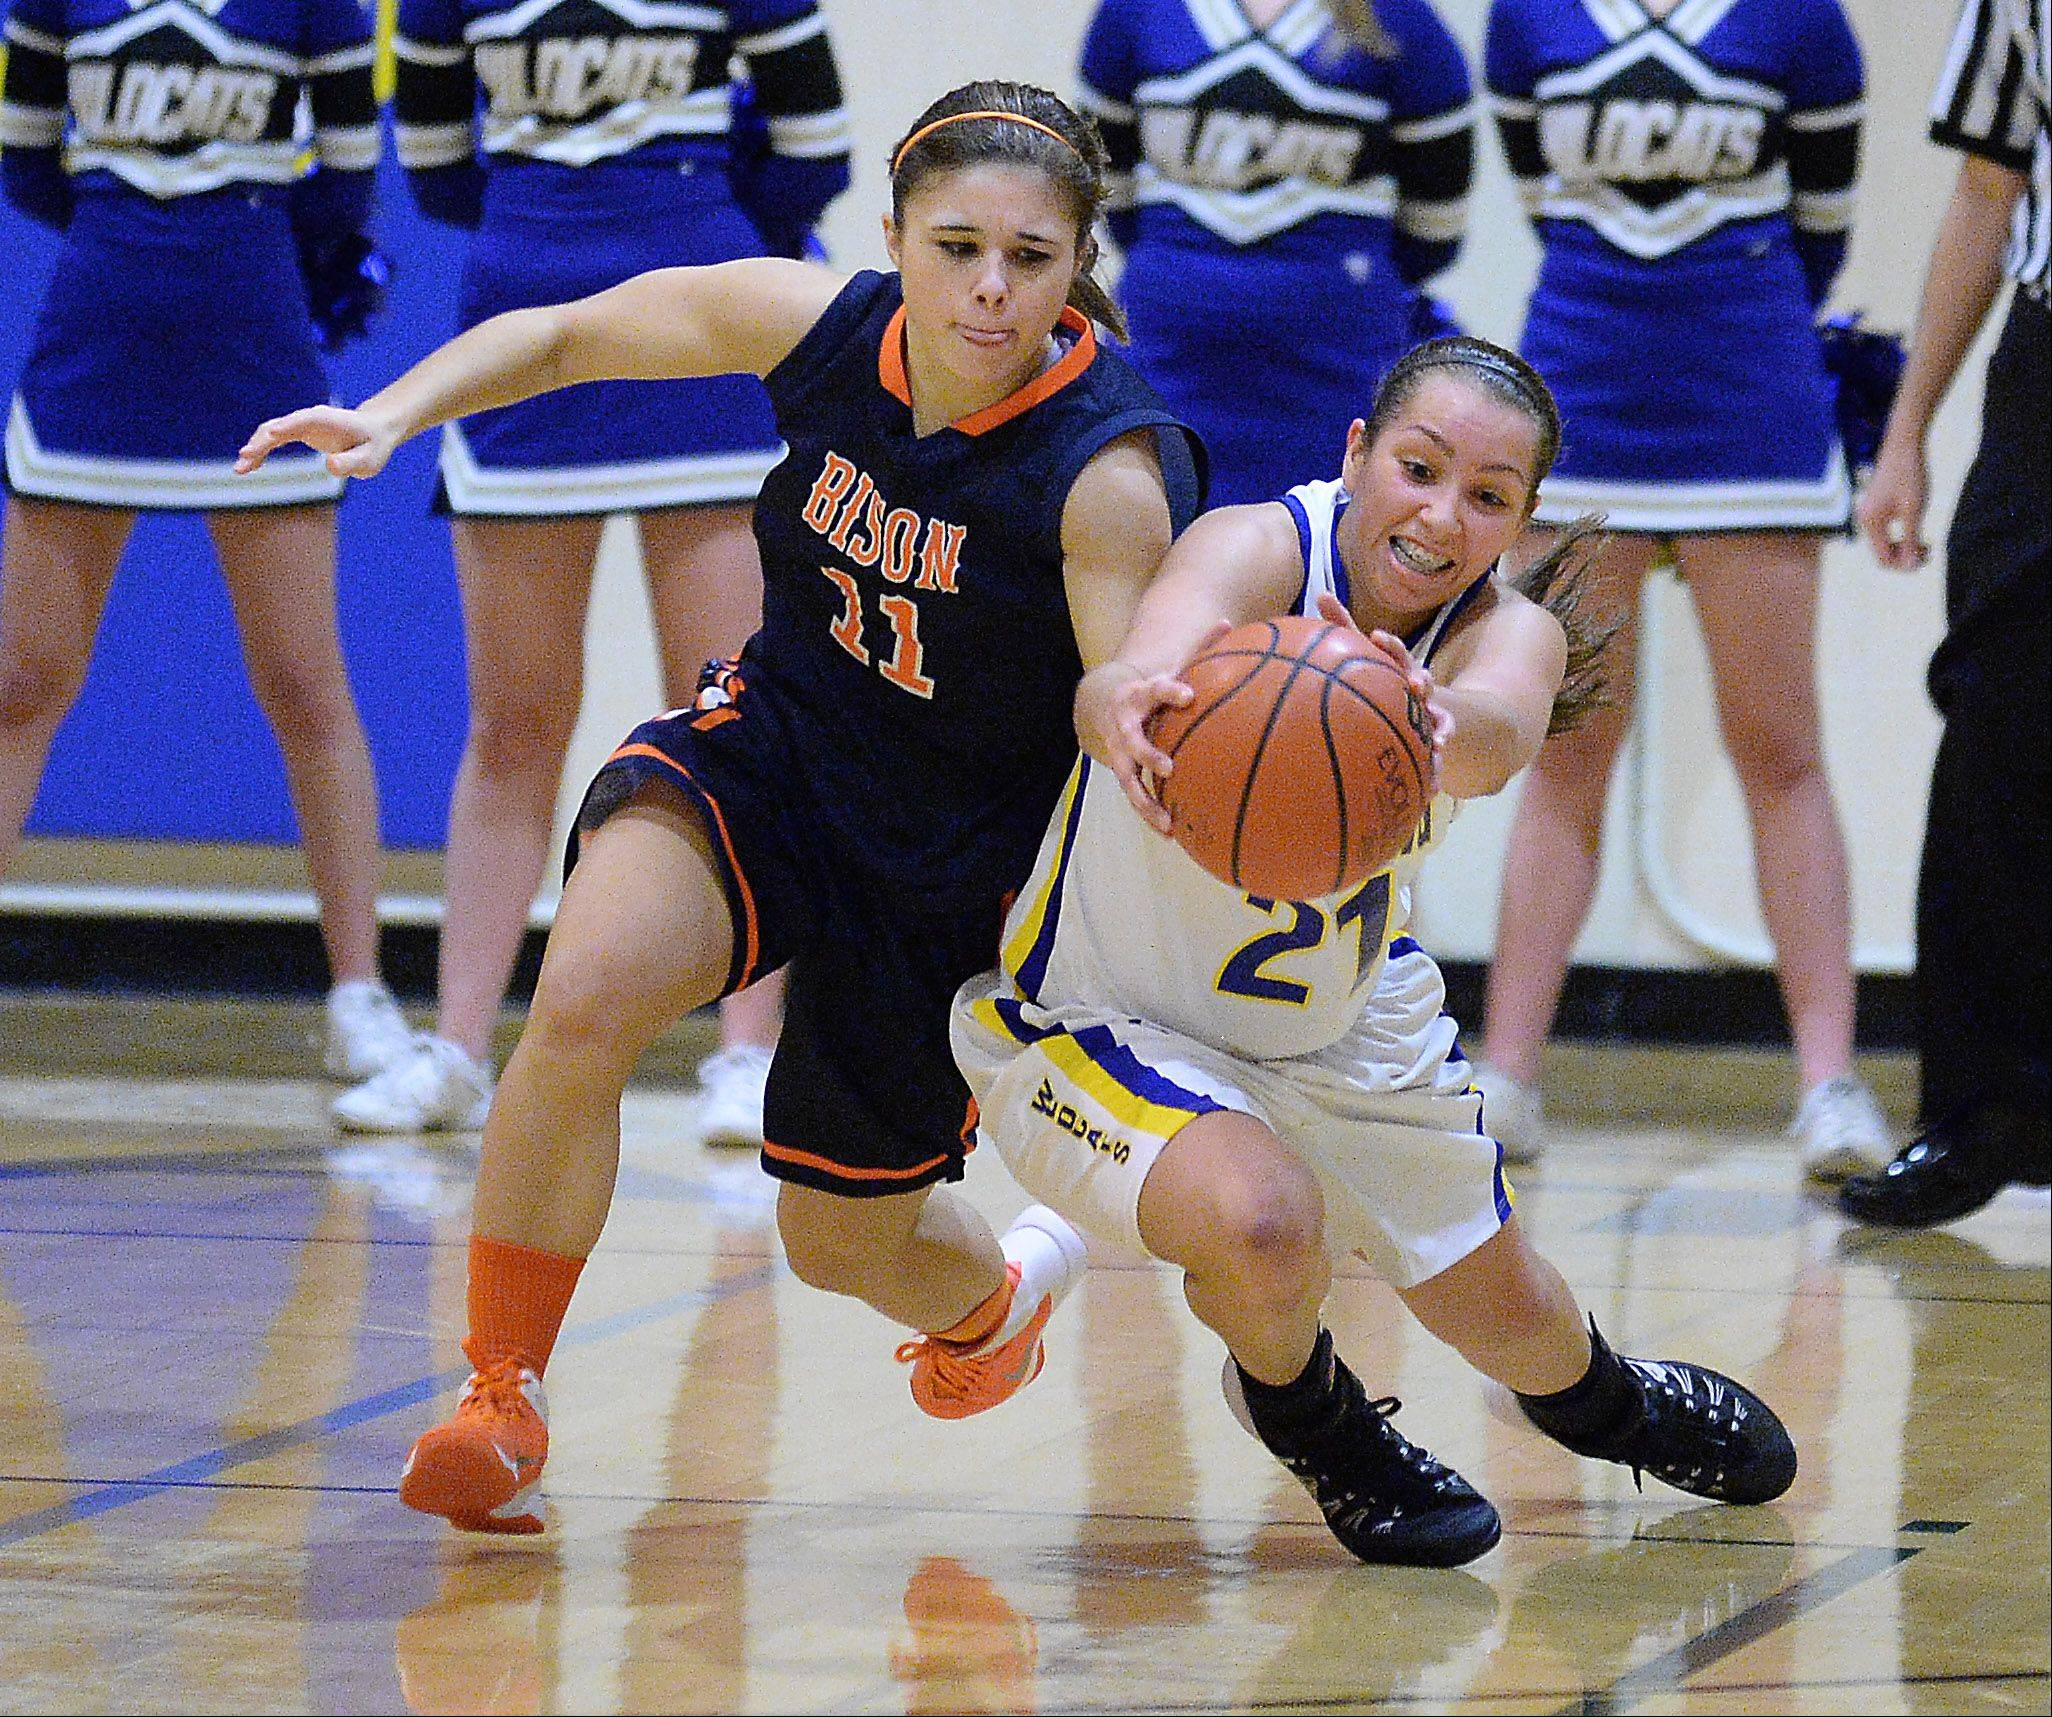 Buffalo Grove's Kim Herzog, left, and Wheeling's Deanna Kuzmanic chase a loose ball during Friday's basketball game in Wheeling.